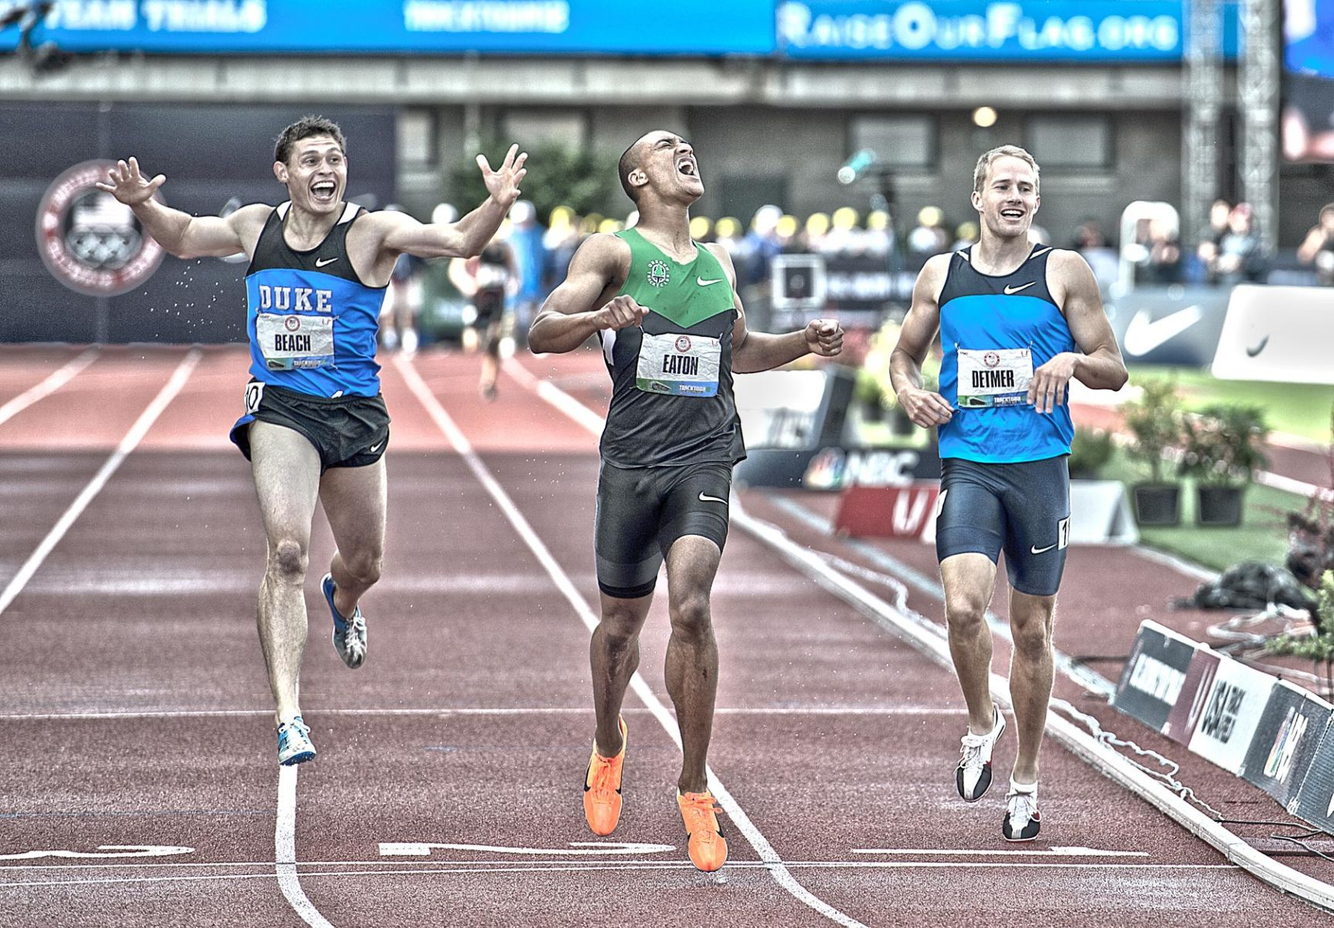 1ustrials2012_ashton_eaton_wr_decathlon_track_and_field_image_jeff_cohen_photgrapy_lb.jpg